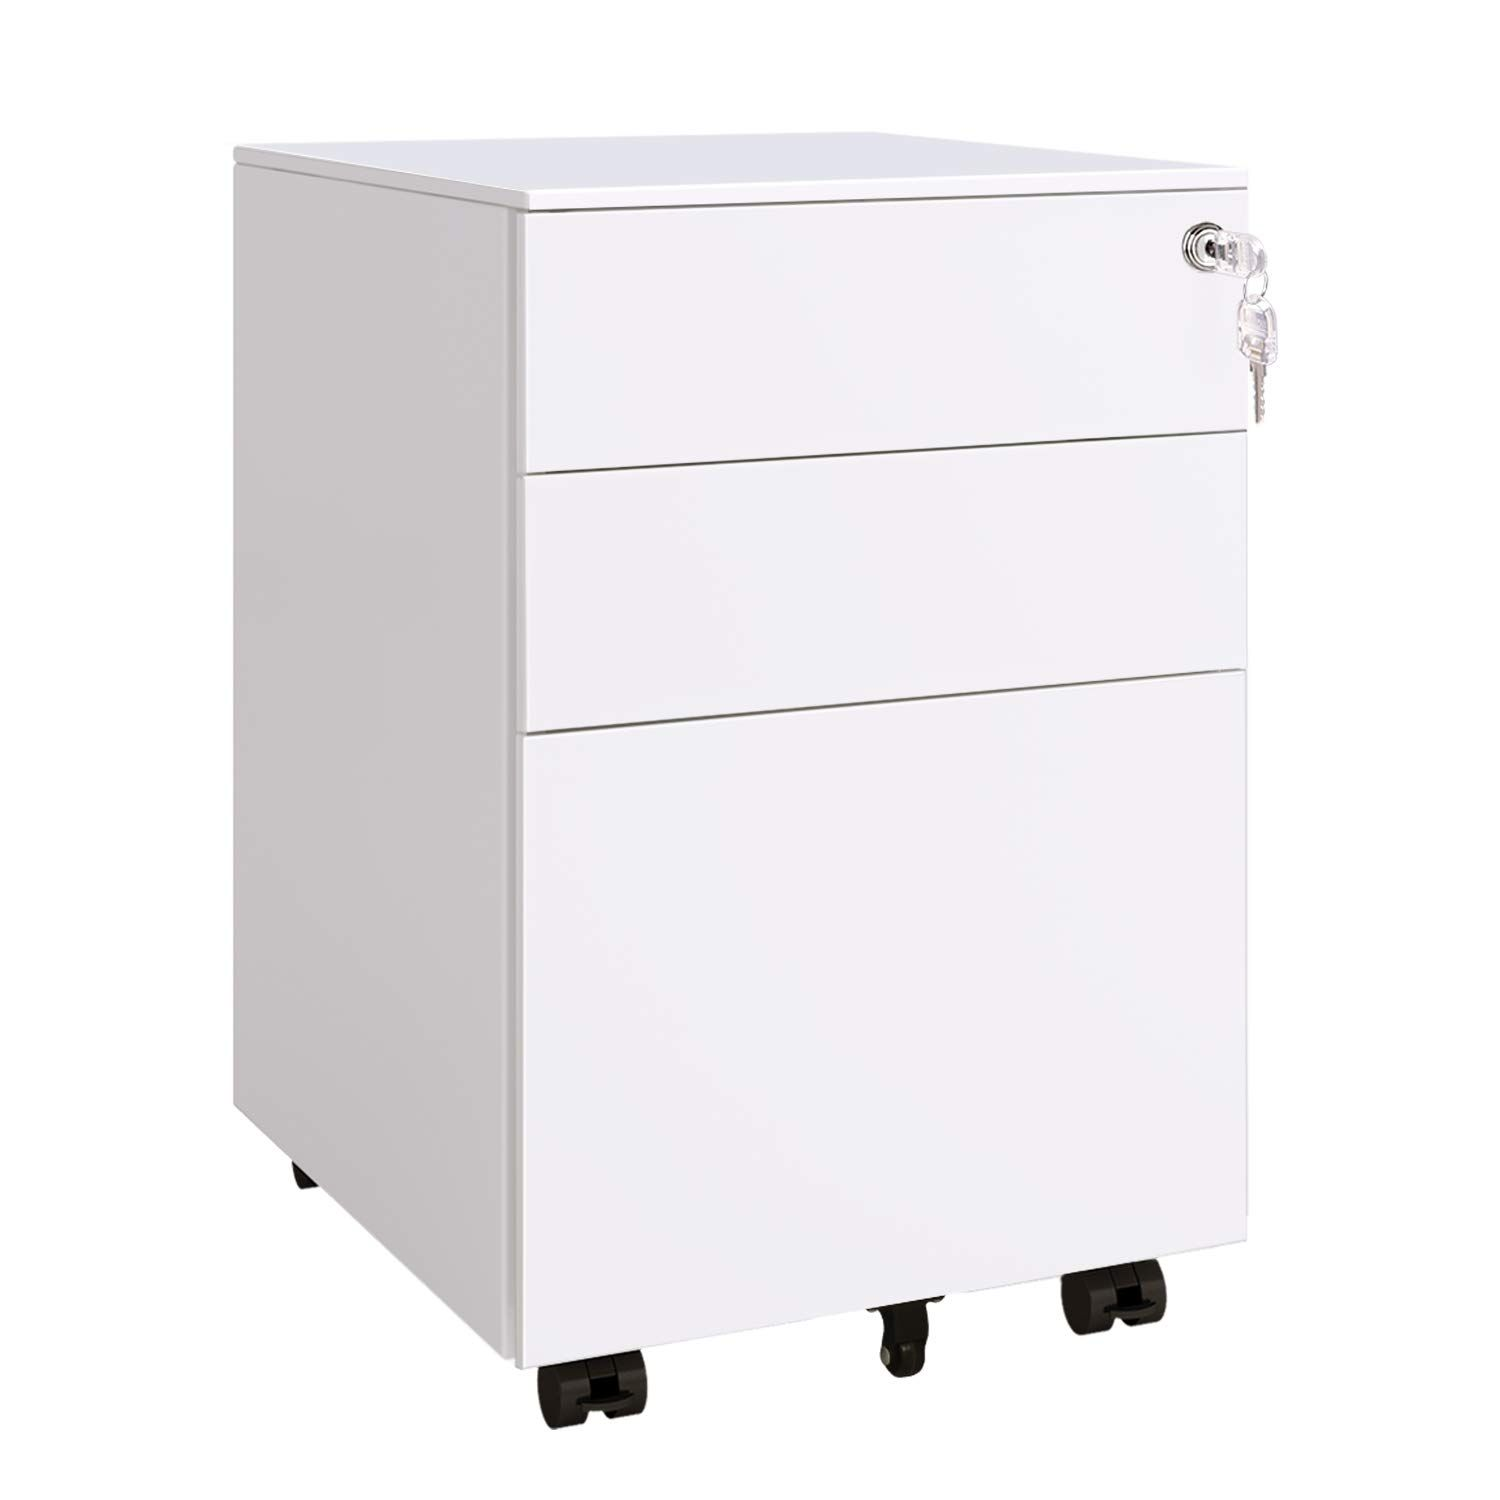 Devaise 3 Drawer Locking Filing Cabinet Mobile Pedestal File Cabinet In White You Can Get Additional Deta In 2020 Filing Cabinet Amazon Home Decor Home Decor Quotes